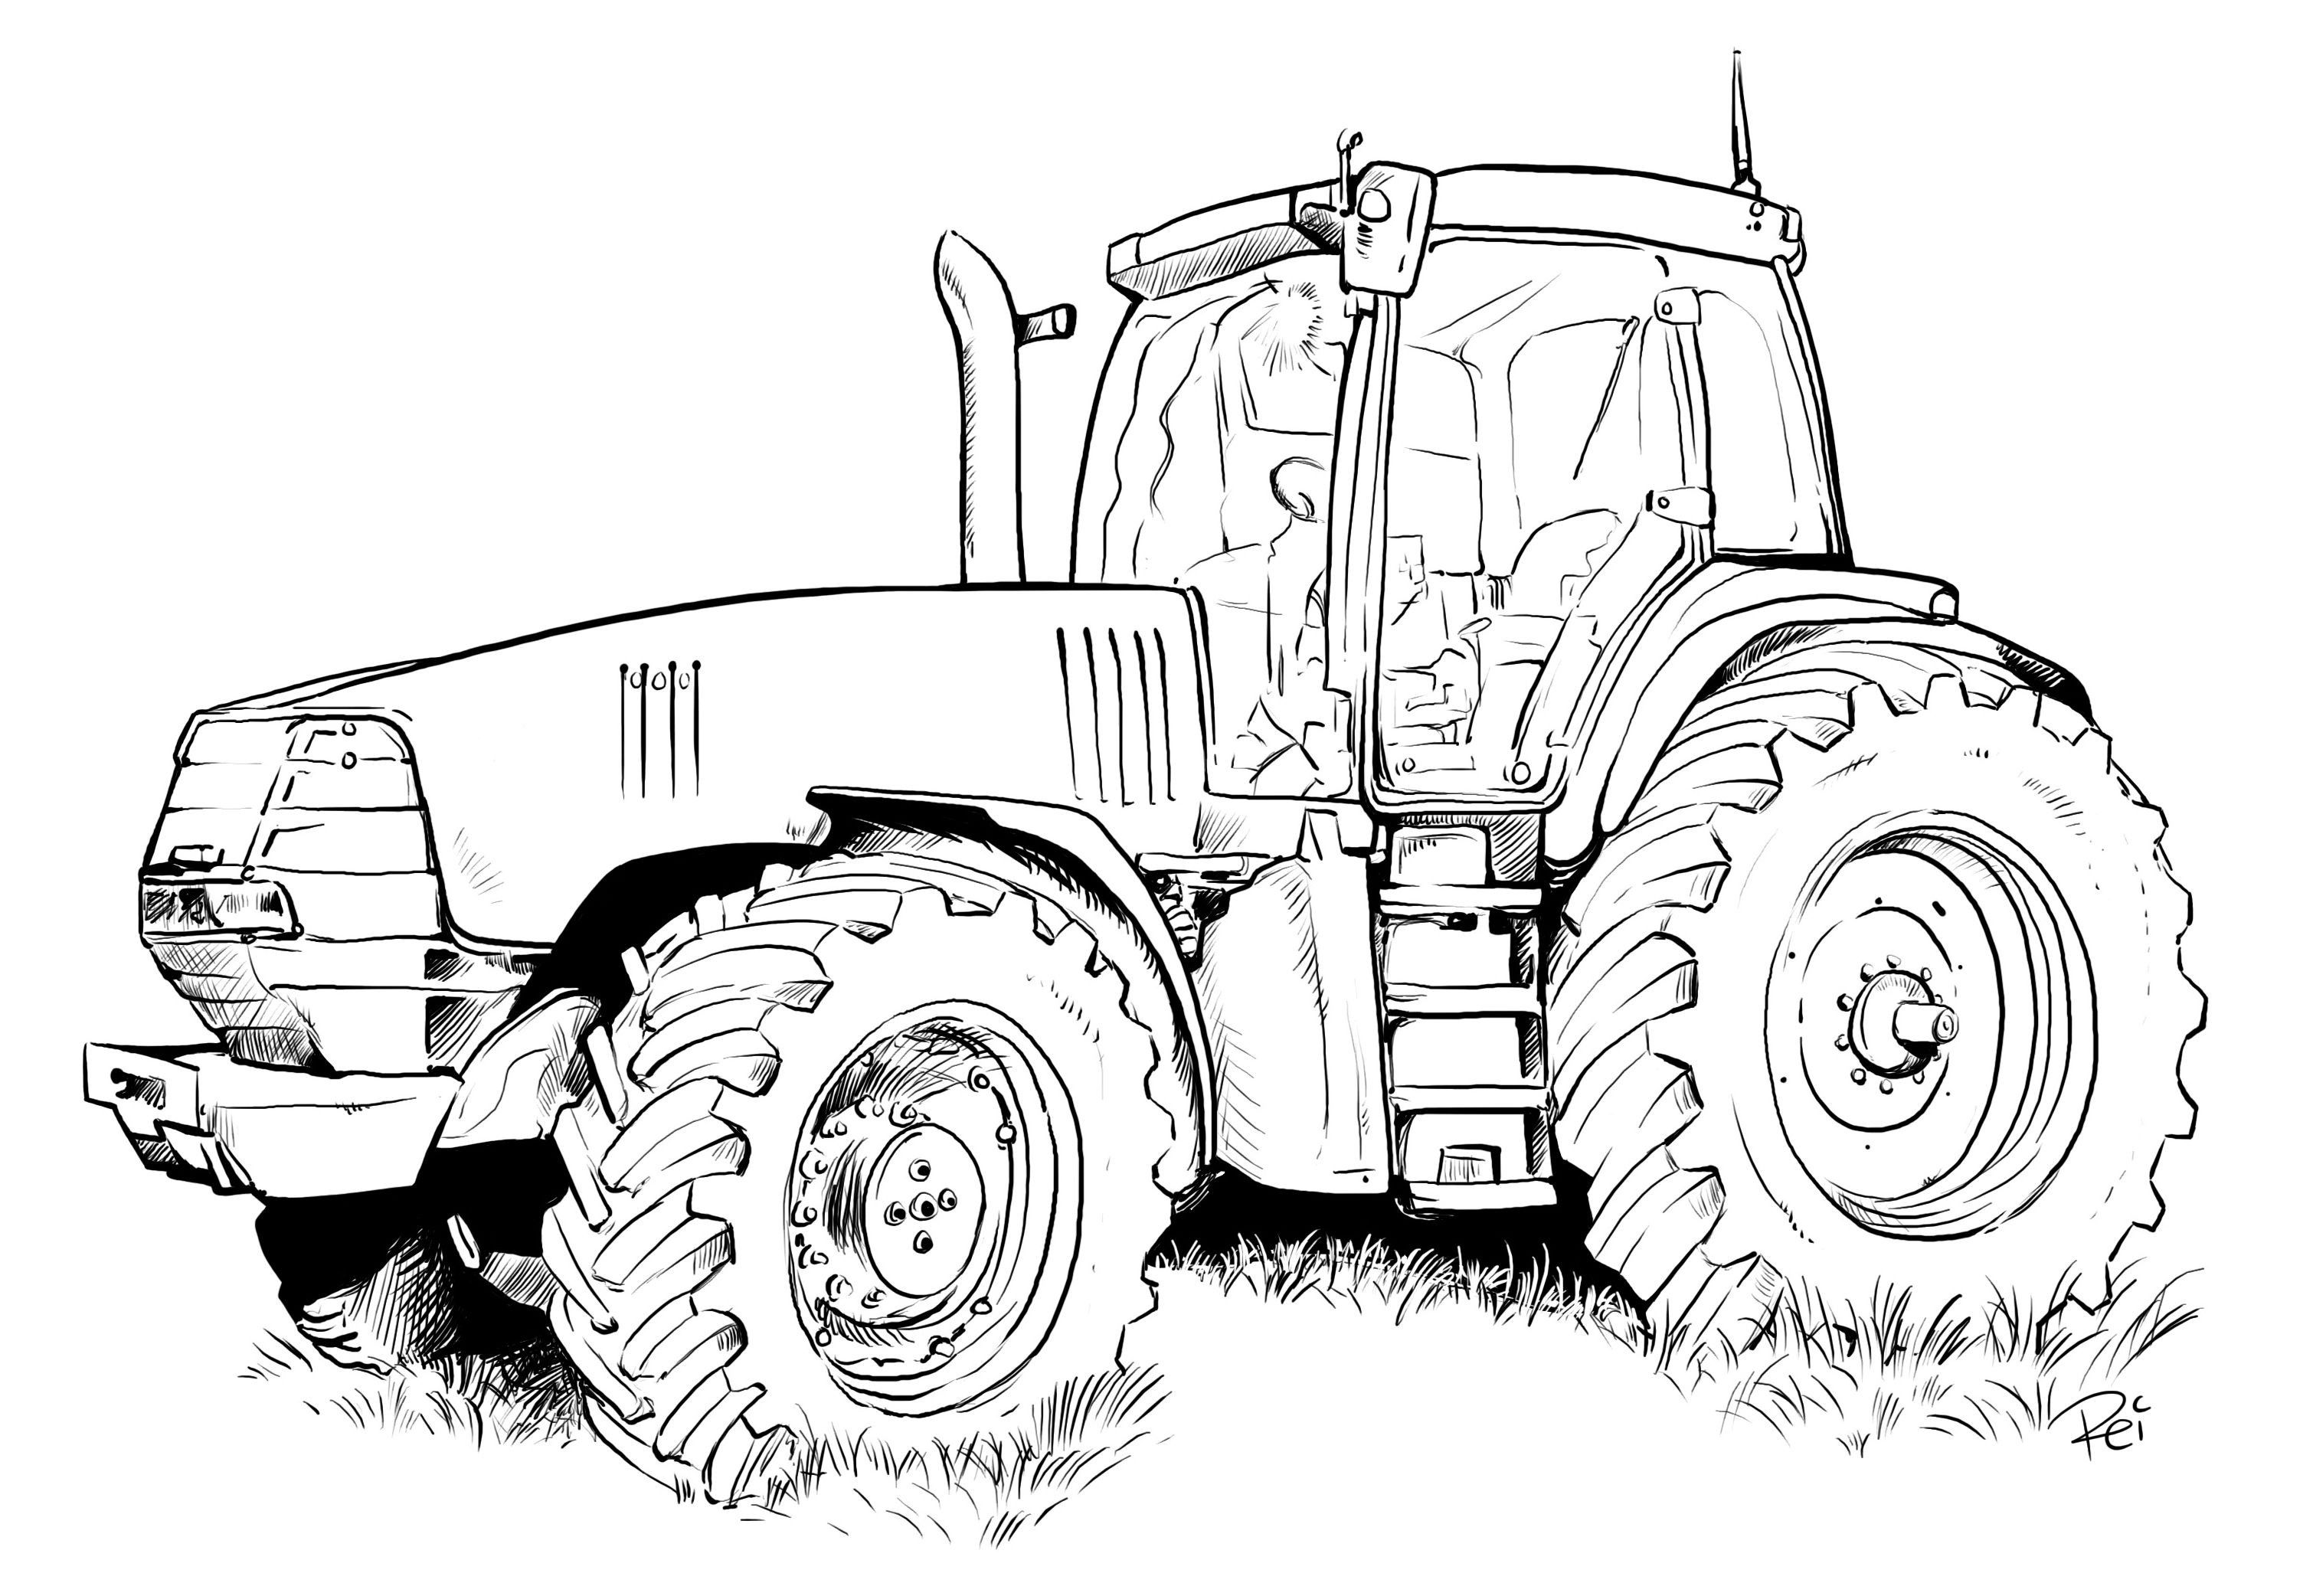 Malvorlagen Malvorlagenkostenlos Check More At Https Coloring Ae Photo De Malvorlag Tractor Coloring Pages Deer Coloring Pages Coloring Pages Inspirational